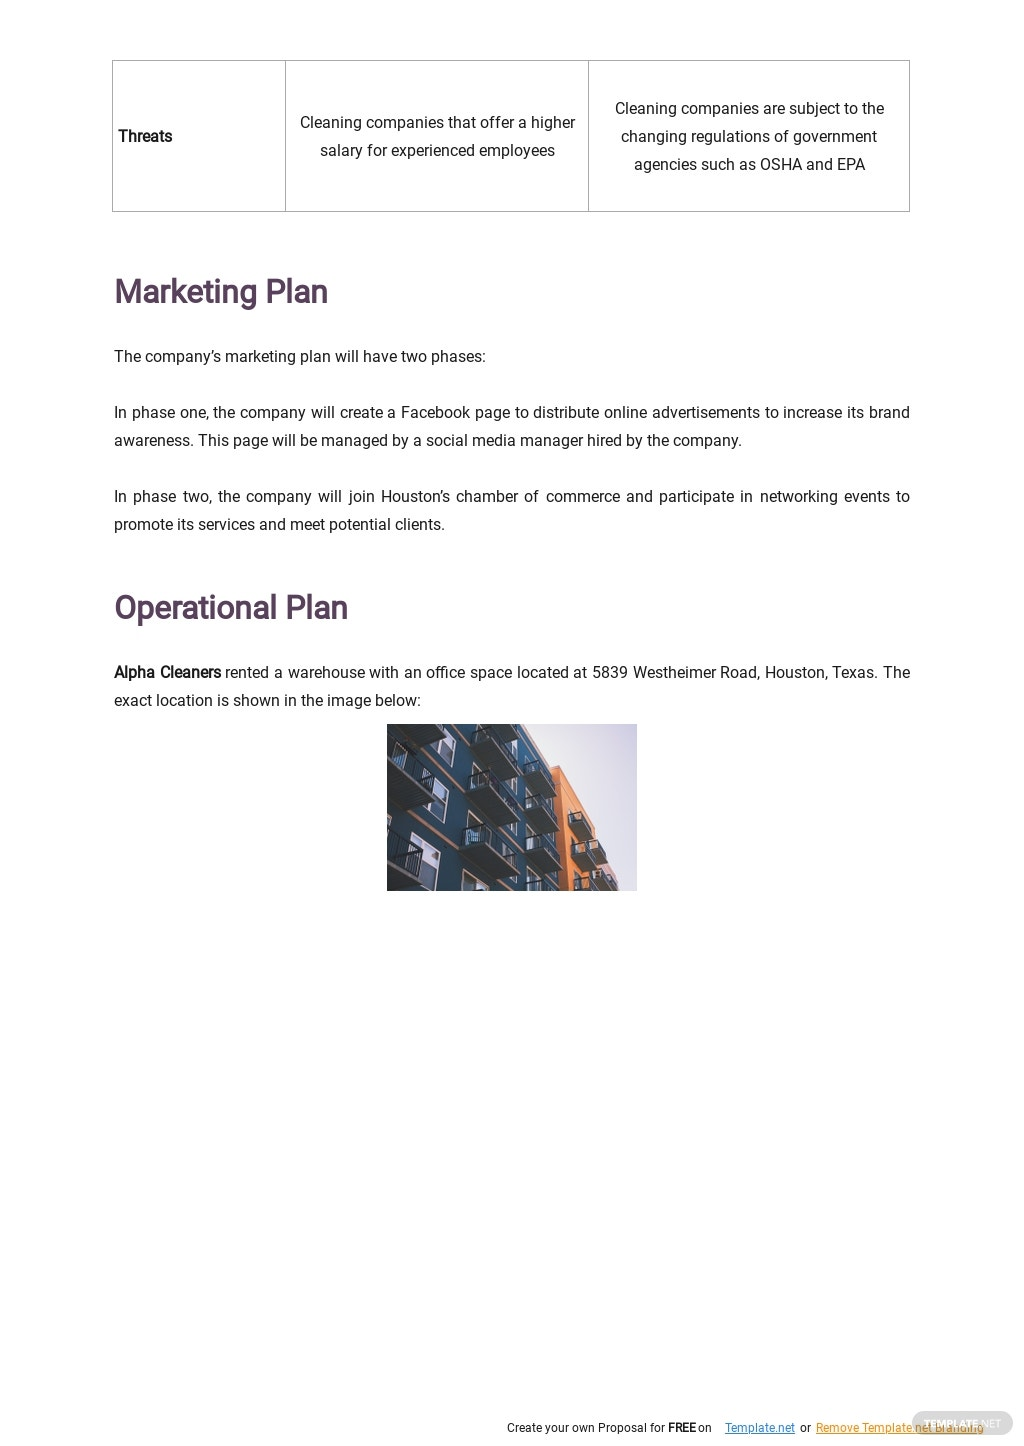 Cleaning Service Business Plan Template 3.jpe